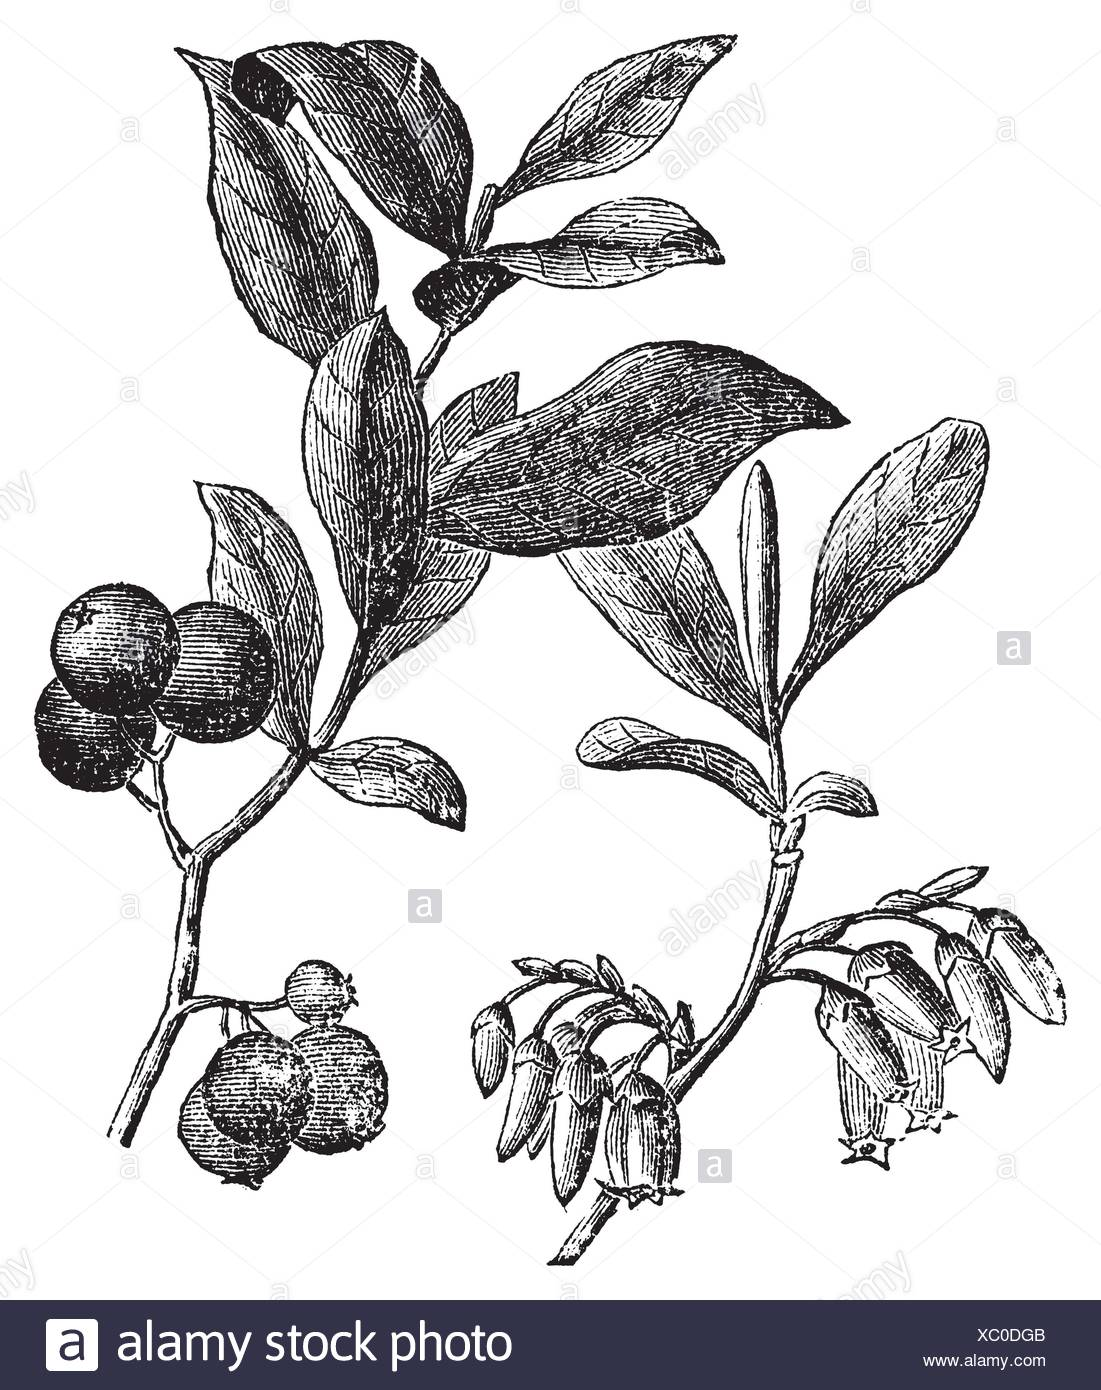 Huckleberry or Gaylussacia resinosa engravin  Old vintage engraved illustration of huckleberry plant  The huckleberry is the state fruit of Idaho - Stock Image